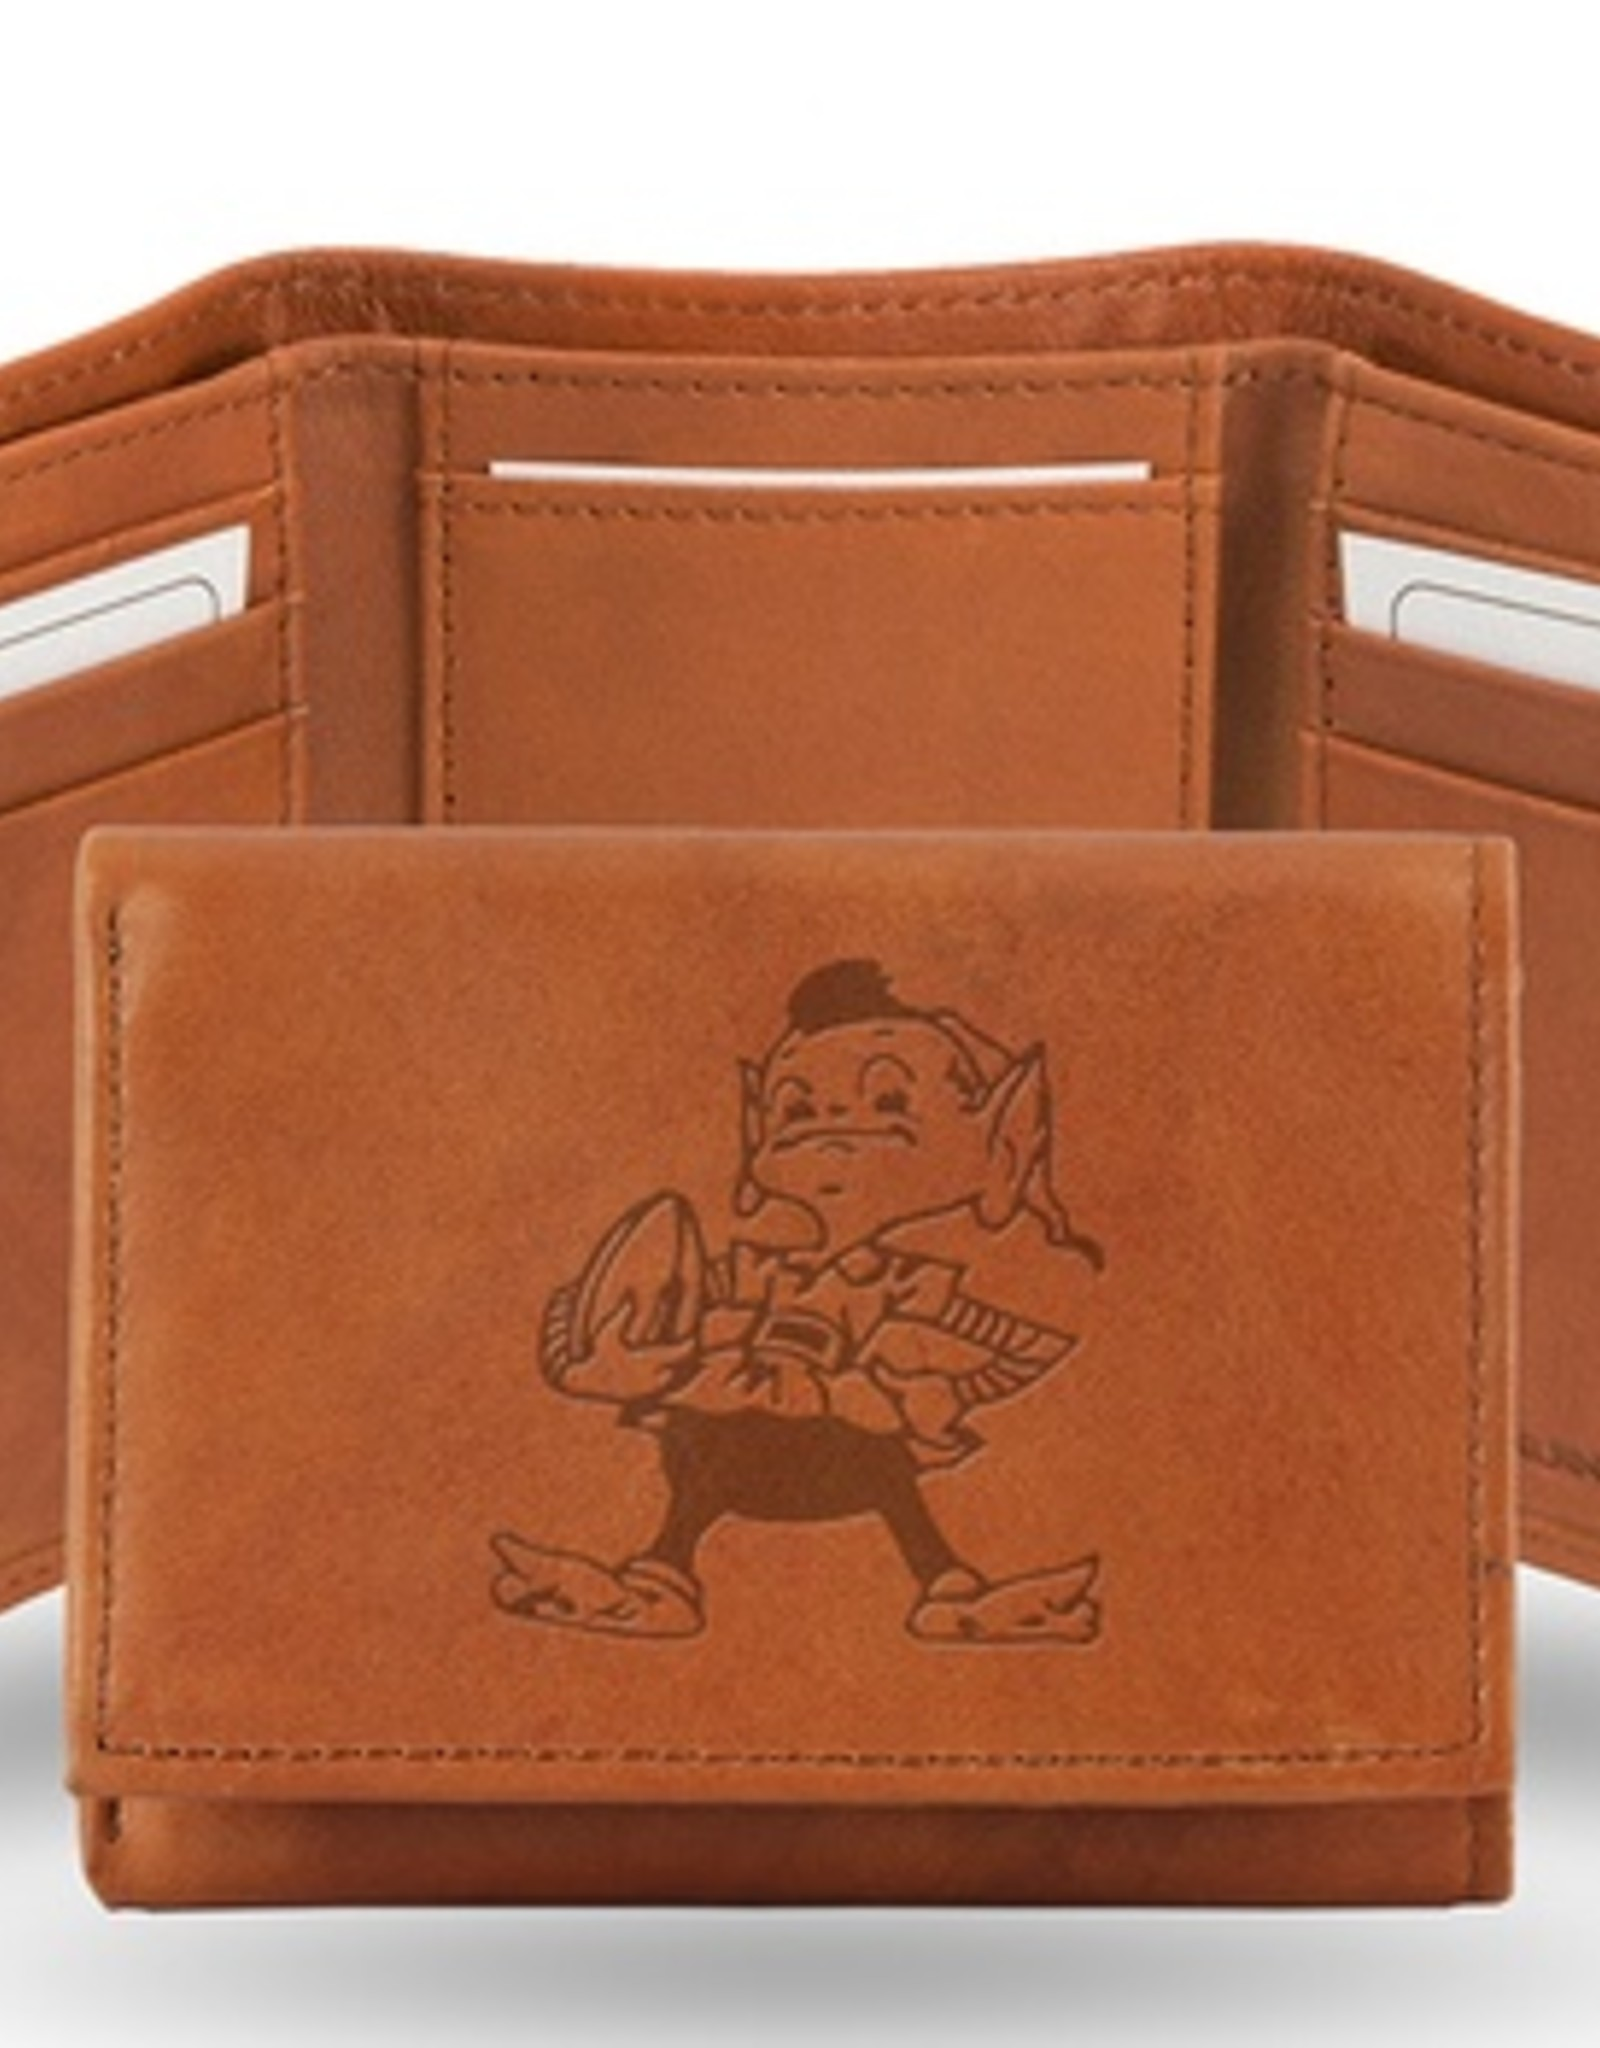 RICO INDUSTRIES Cleveland Browns Genuine Leather Vintage Trifold Wallet